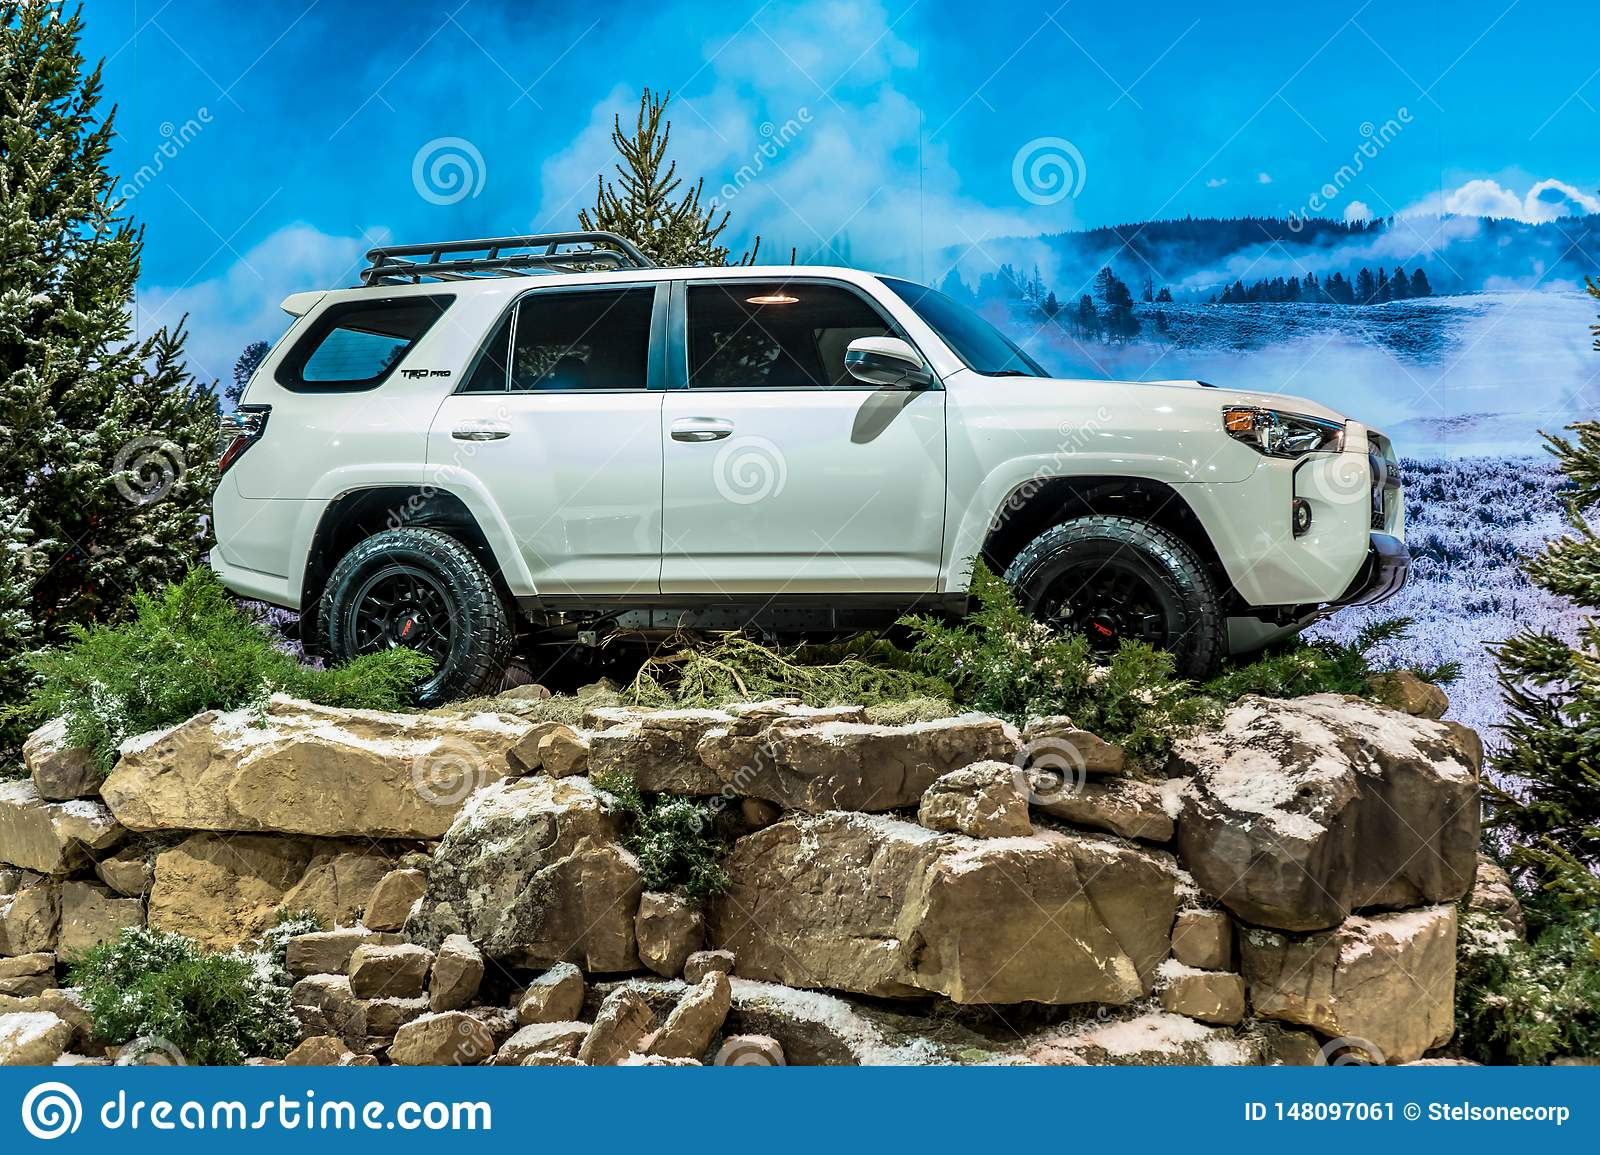 White 2019 Toyota 4runner Trd Pro Exposed On Winter Instalation Taken On Chicago Autoshow 02 17 2019 Editorial Photo Image Of Mountain Truck 148097061